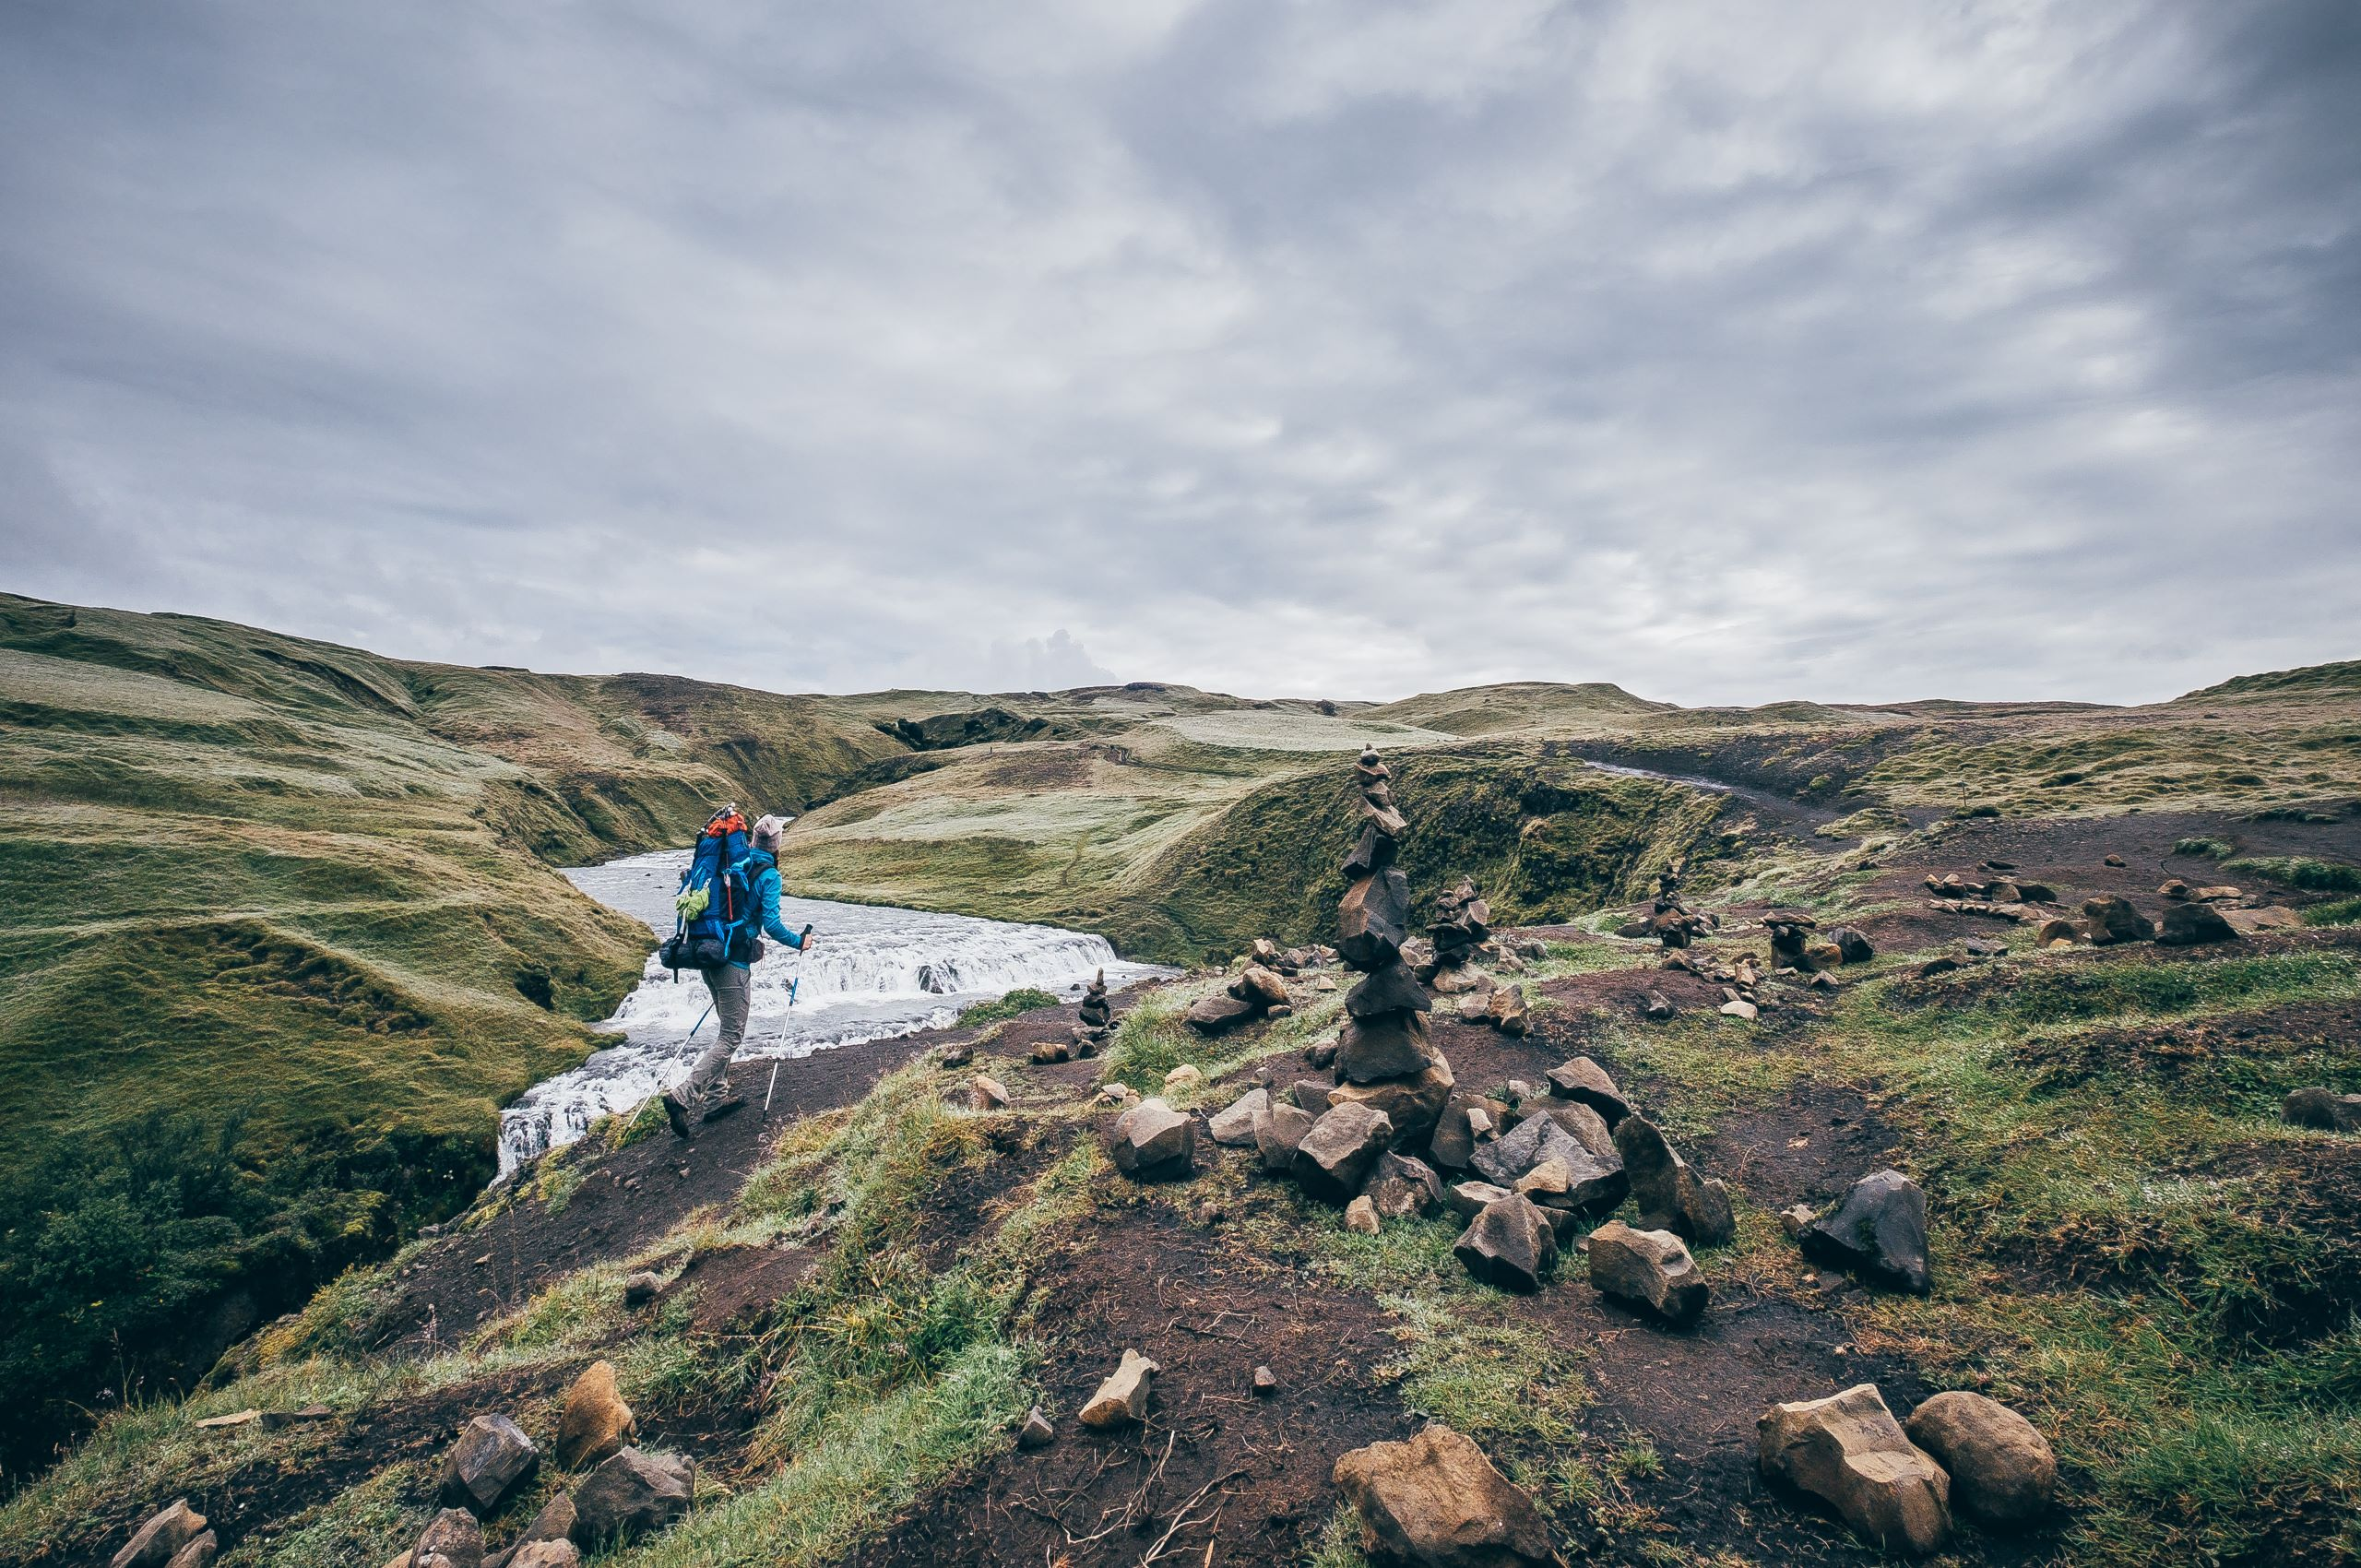 The Iceland Trail